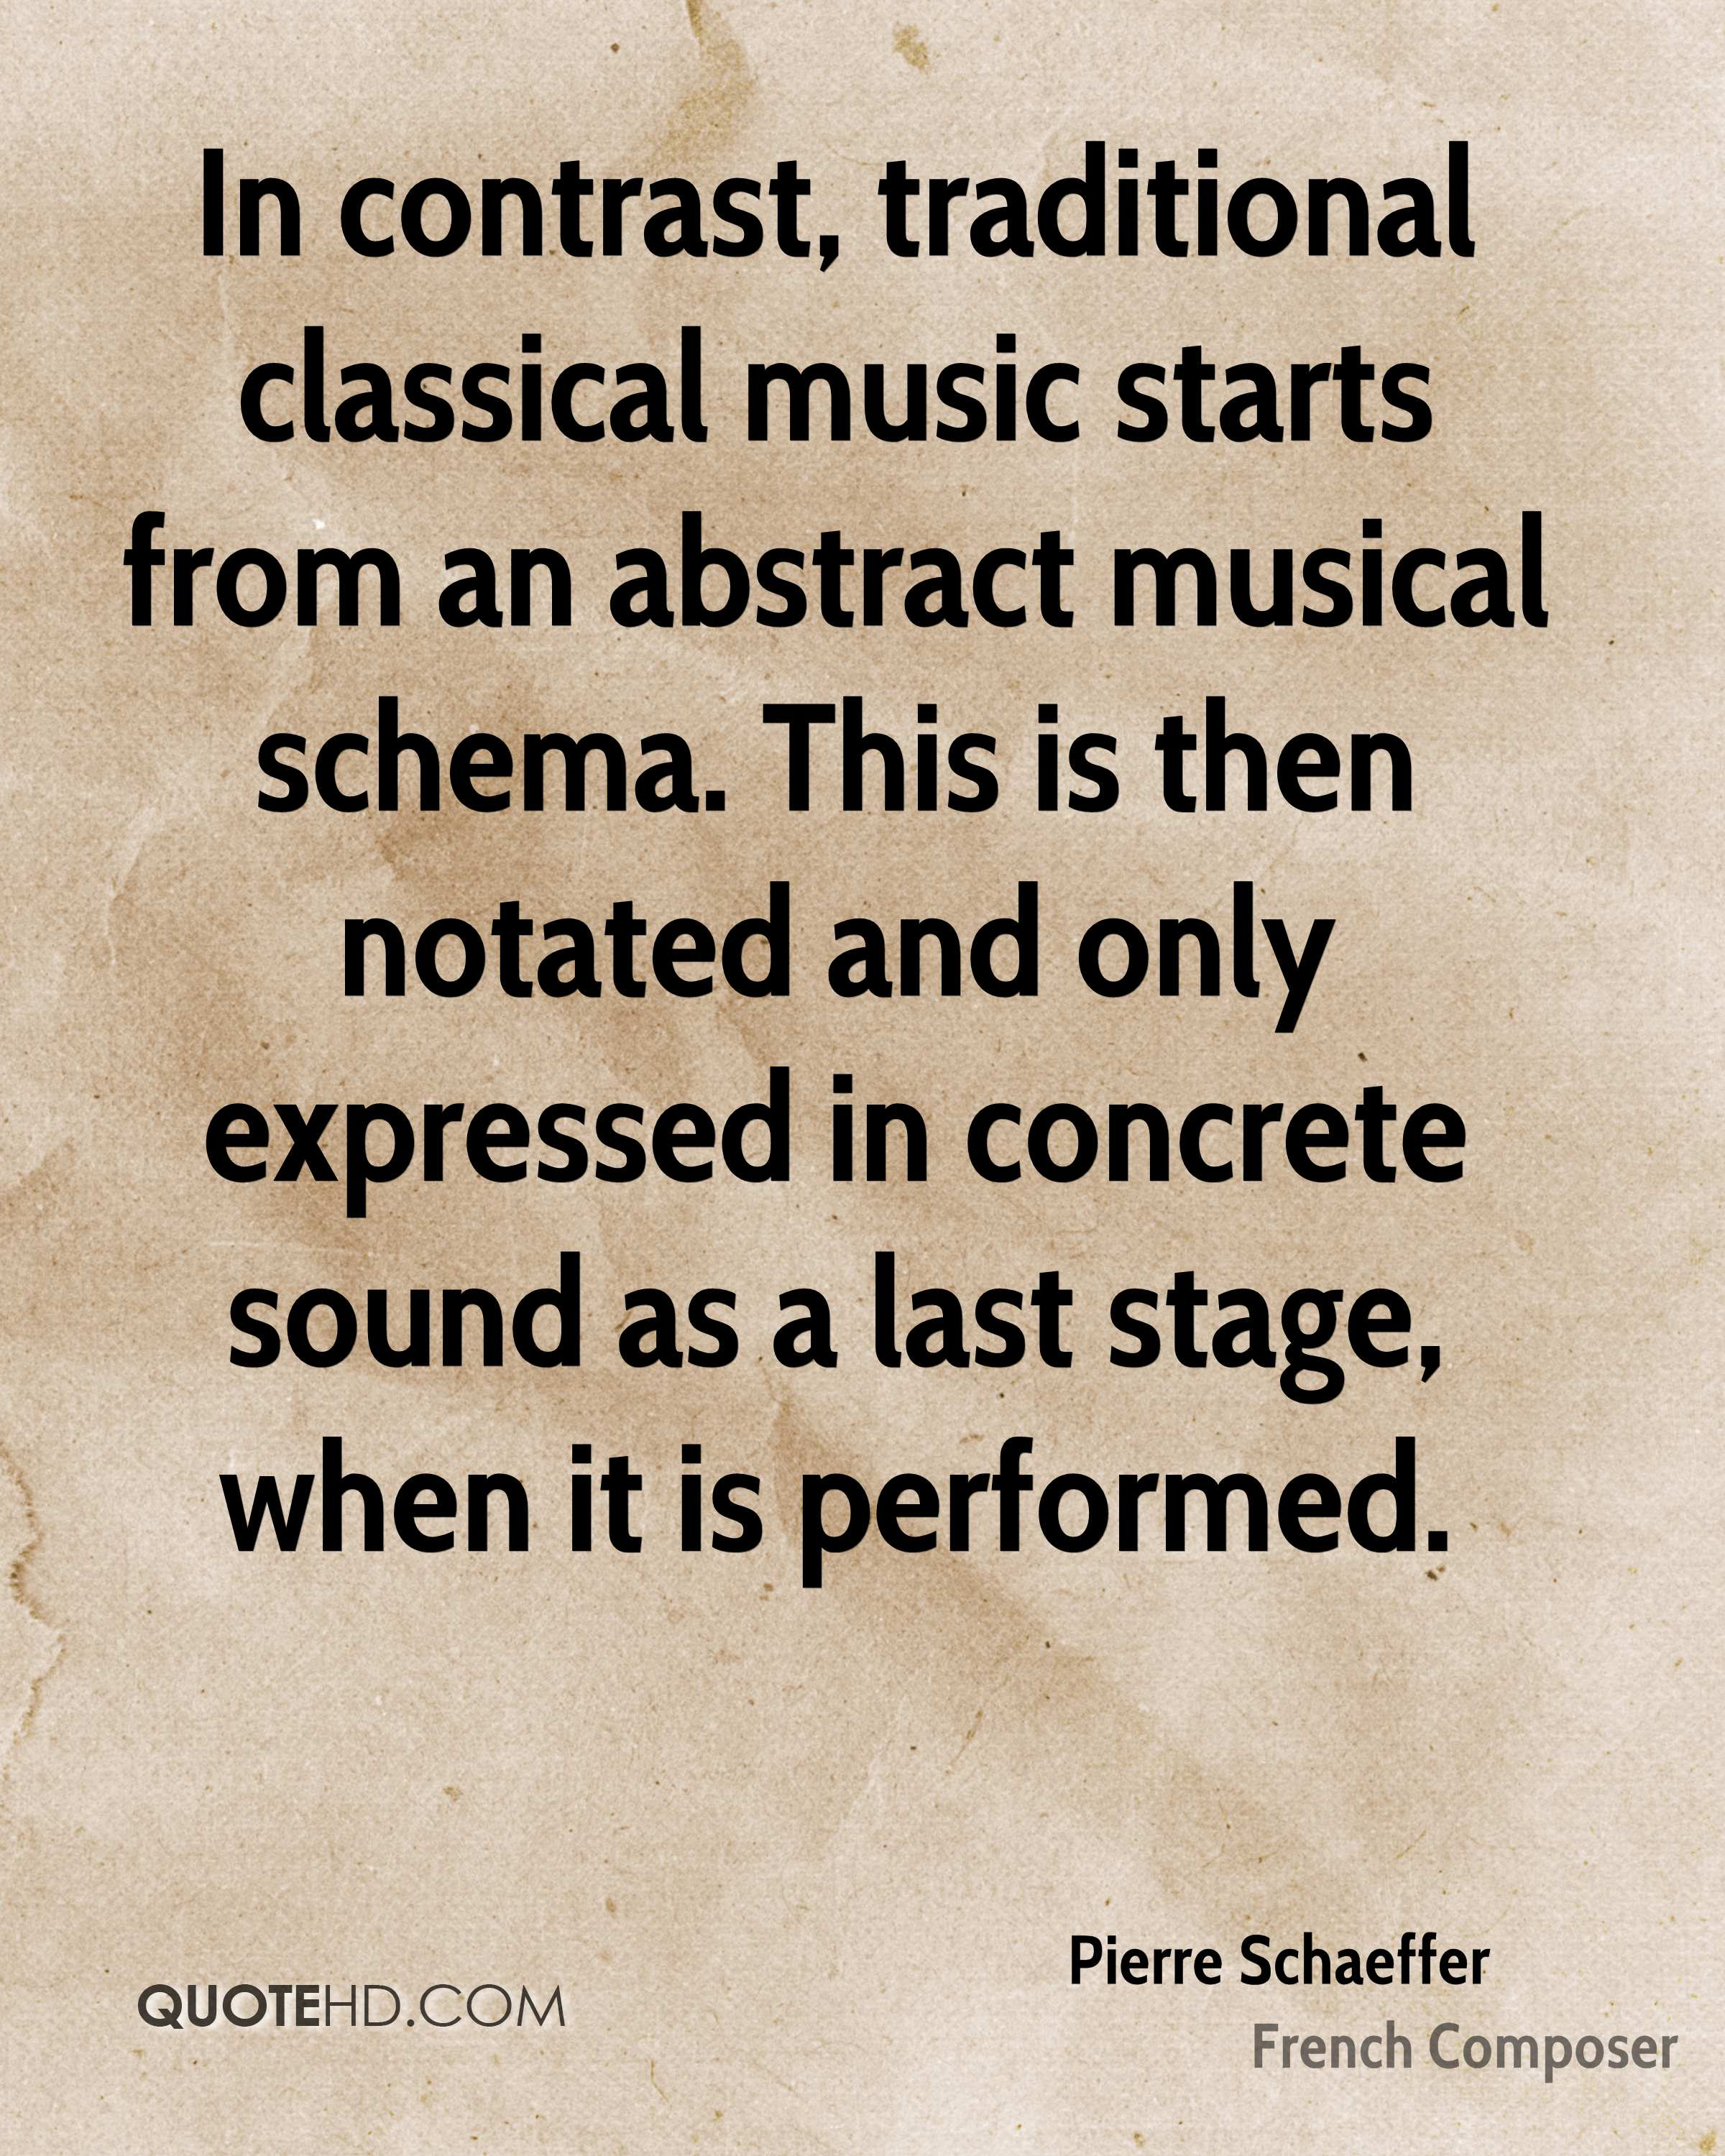 In contrast, traditional classical music starts from an abstract musical schema. This is then notated and only expressed in concrete sound as a last stage, when it is performed.